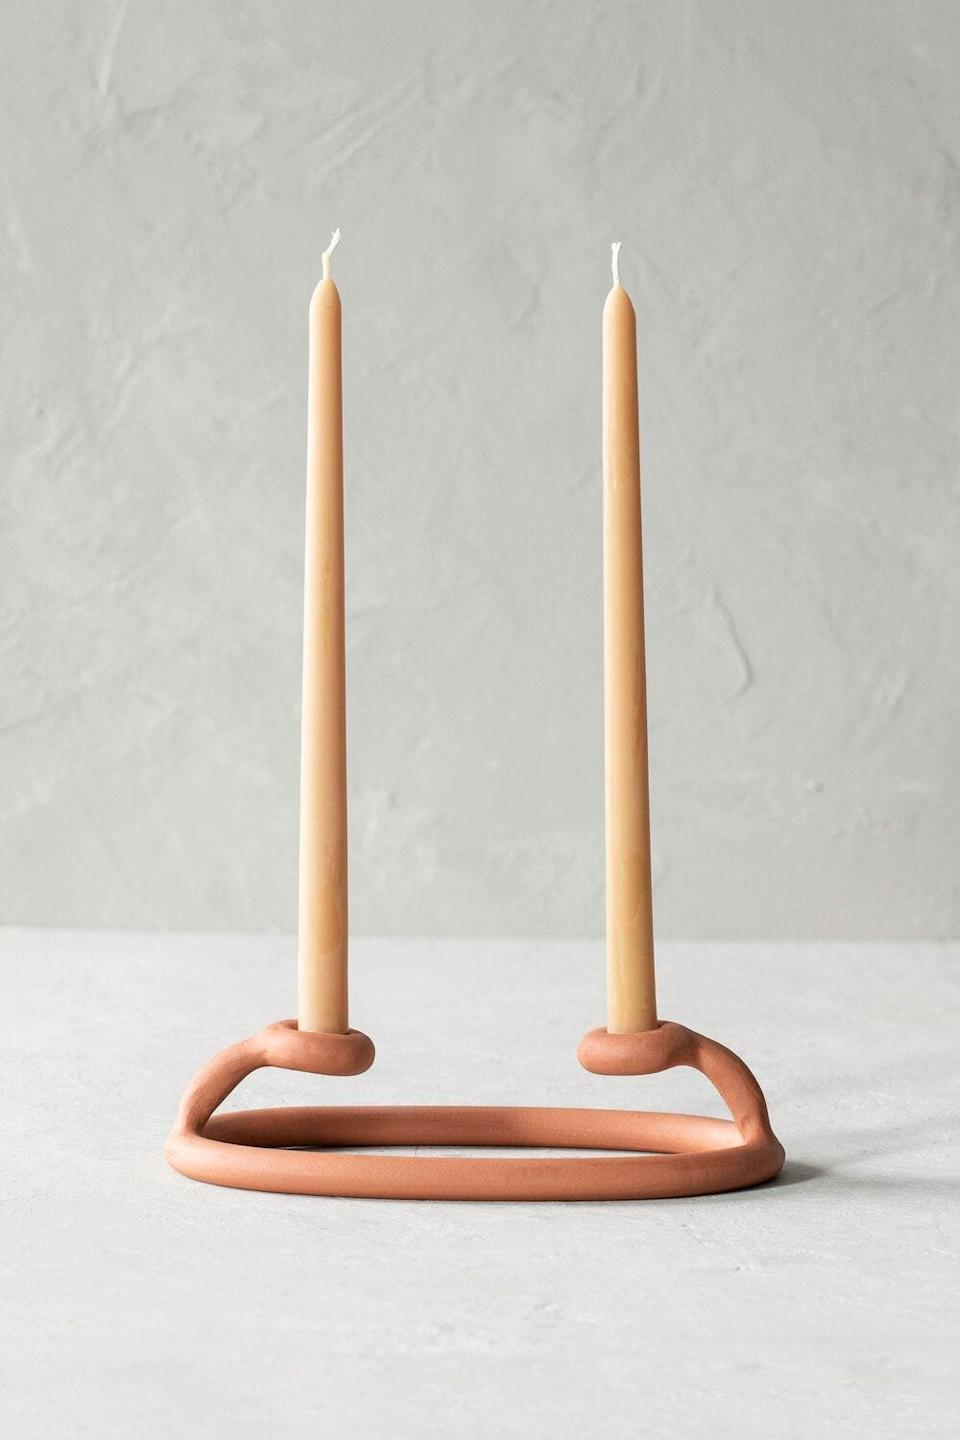 """Zhuzh up her space with a unique accent piece from Brooklyn ceramics studio Sin. The brand's duo candle holder is the perfect topper for any dining room table, kitchen island, or credenza. $58, Lulu & Georgia. <a href=""""https://www.luluandgeorgia.com/sin-duo-candlestick-terracotta"""" rel=""""nofollow noopener"""" target=""""_blank"""" data-ylk=""""slk:Get it now!"""" class=""""link rapid-noclick-resp"""">Get it now!</a>"""